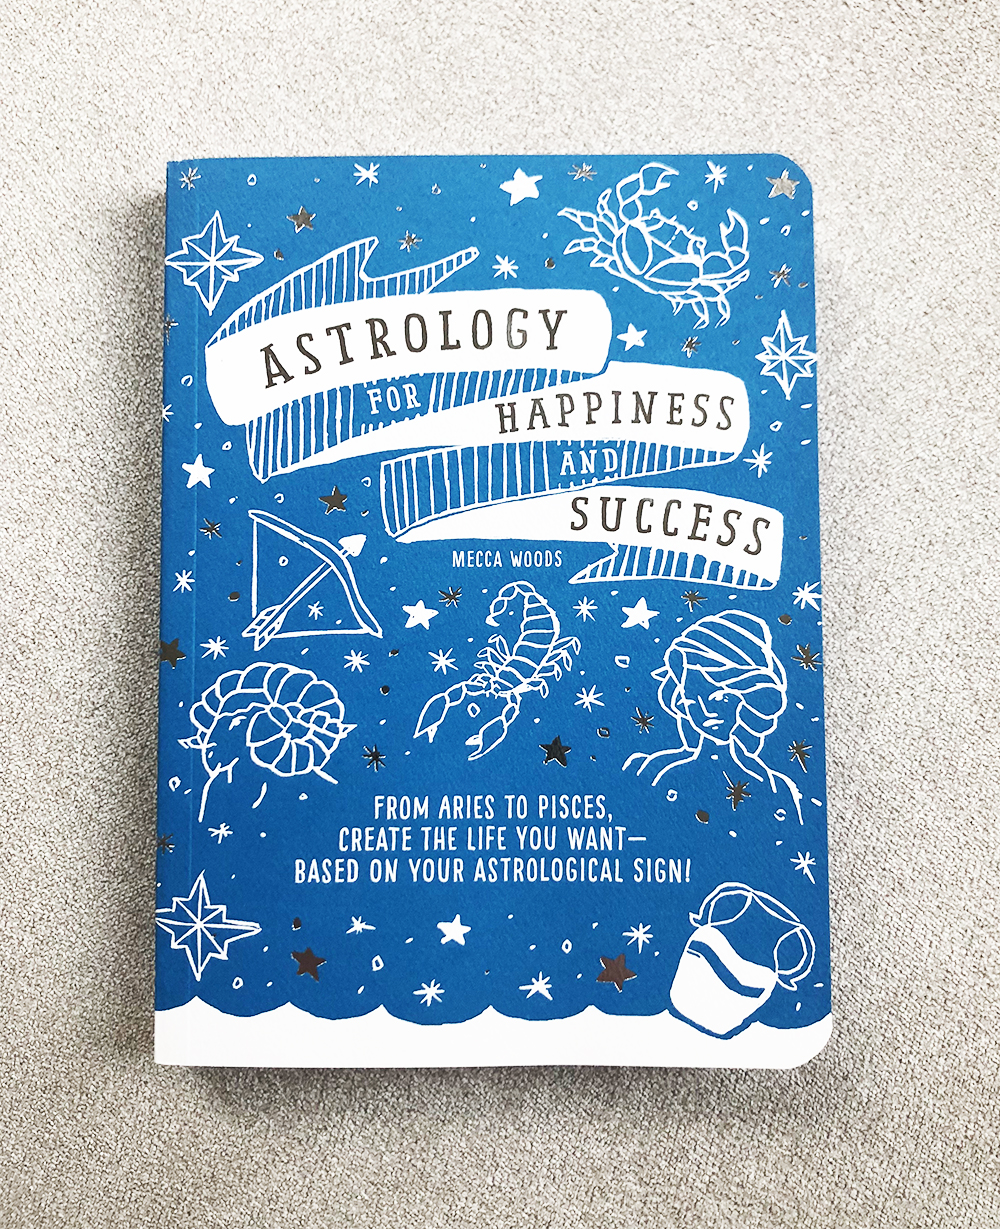 Astrology of Happiness and Success